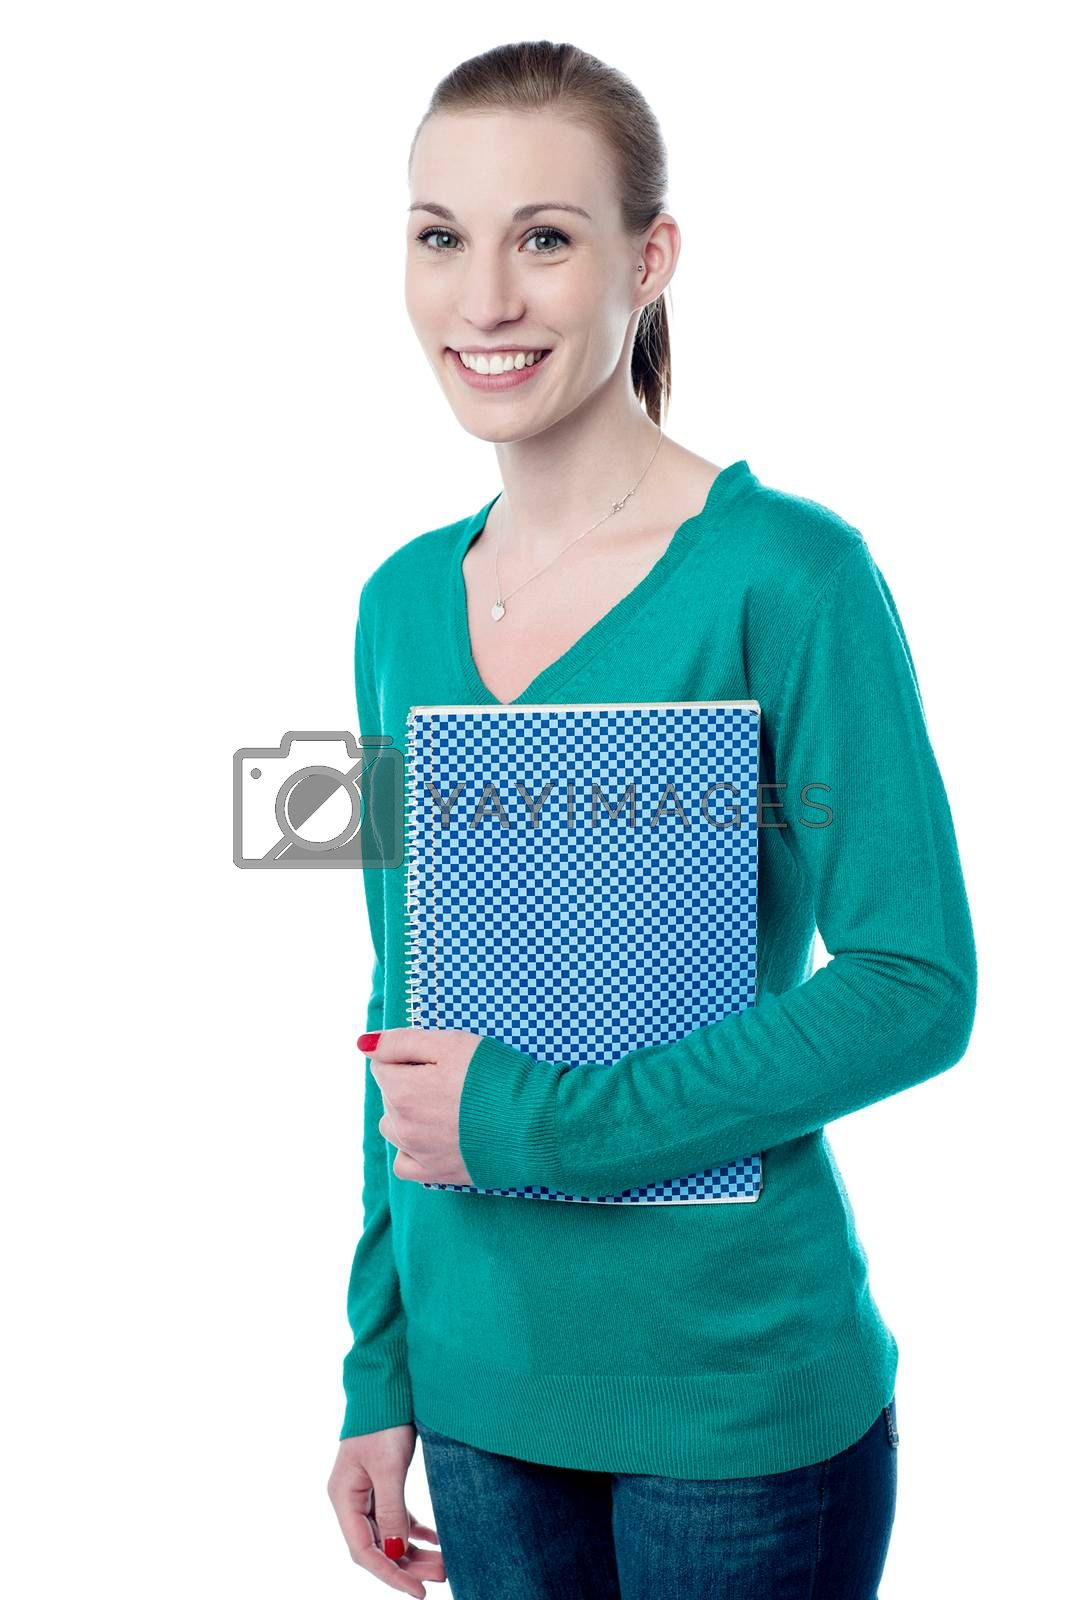 Young college student posing with notebook